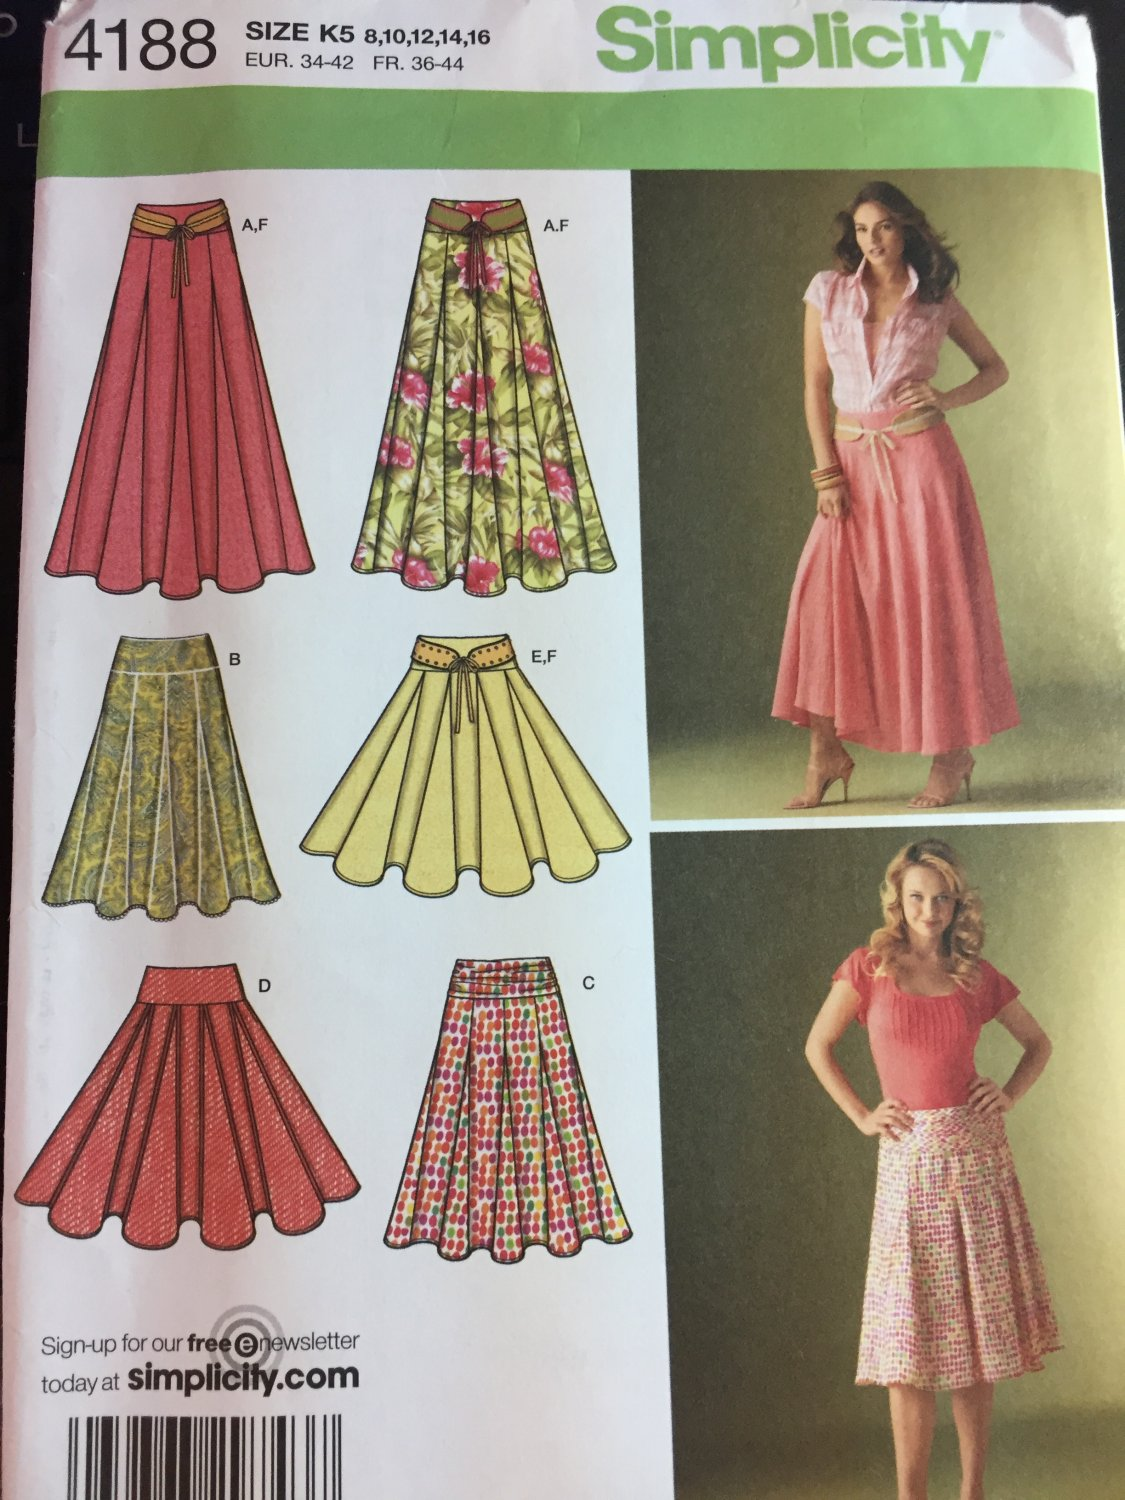 Simplicity 4188  Misses' Skirts Sewing Pattern Skirts w/ Length Variations Belt  Size 8 to 16,